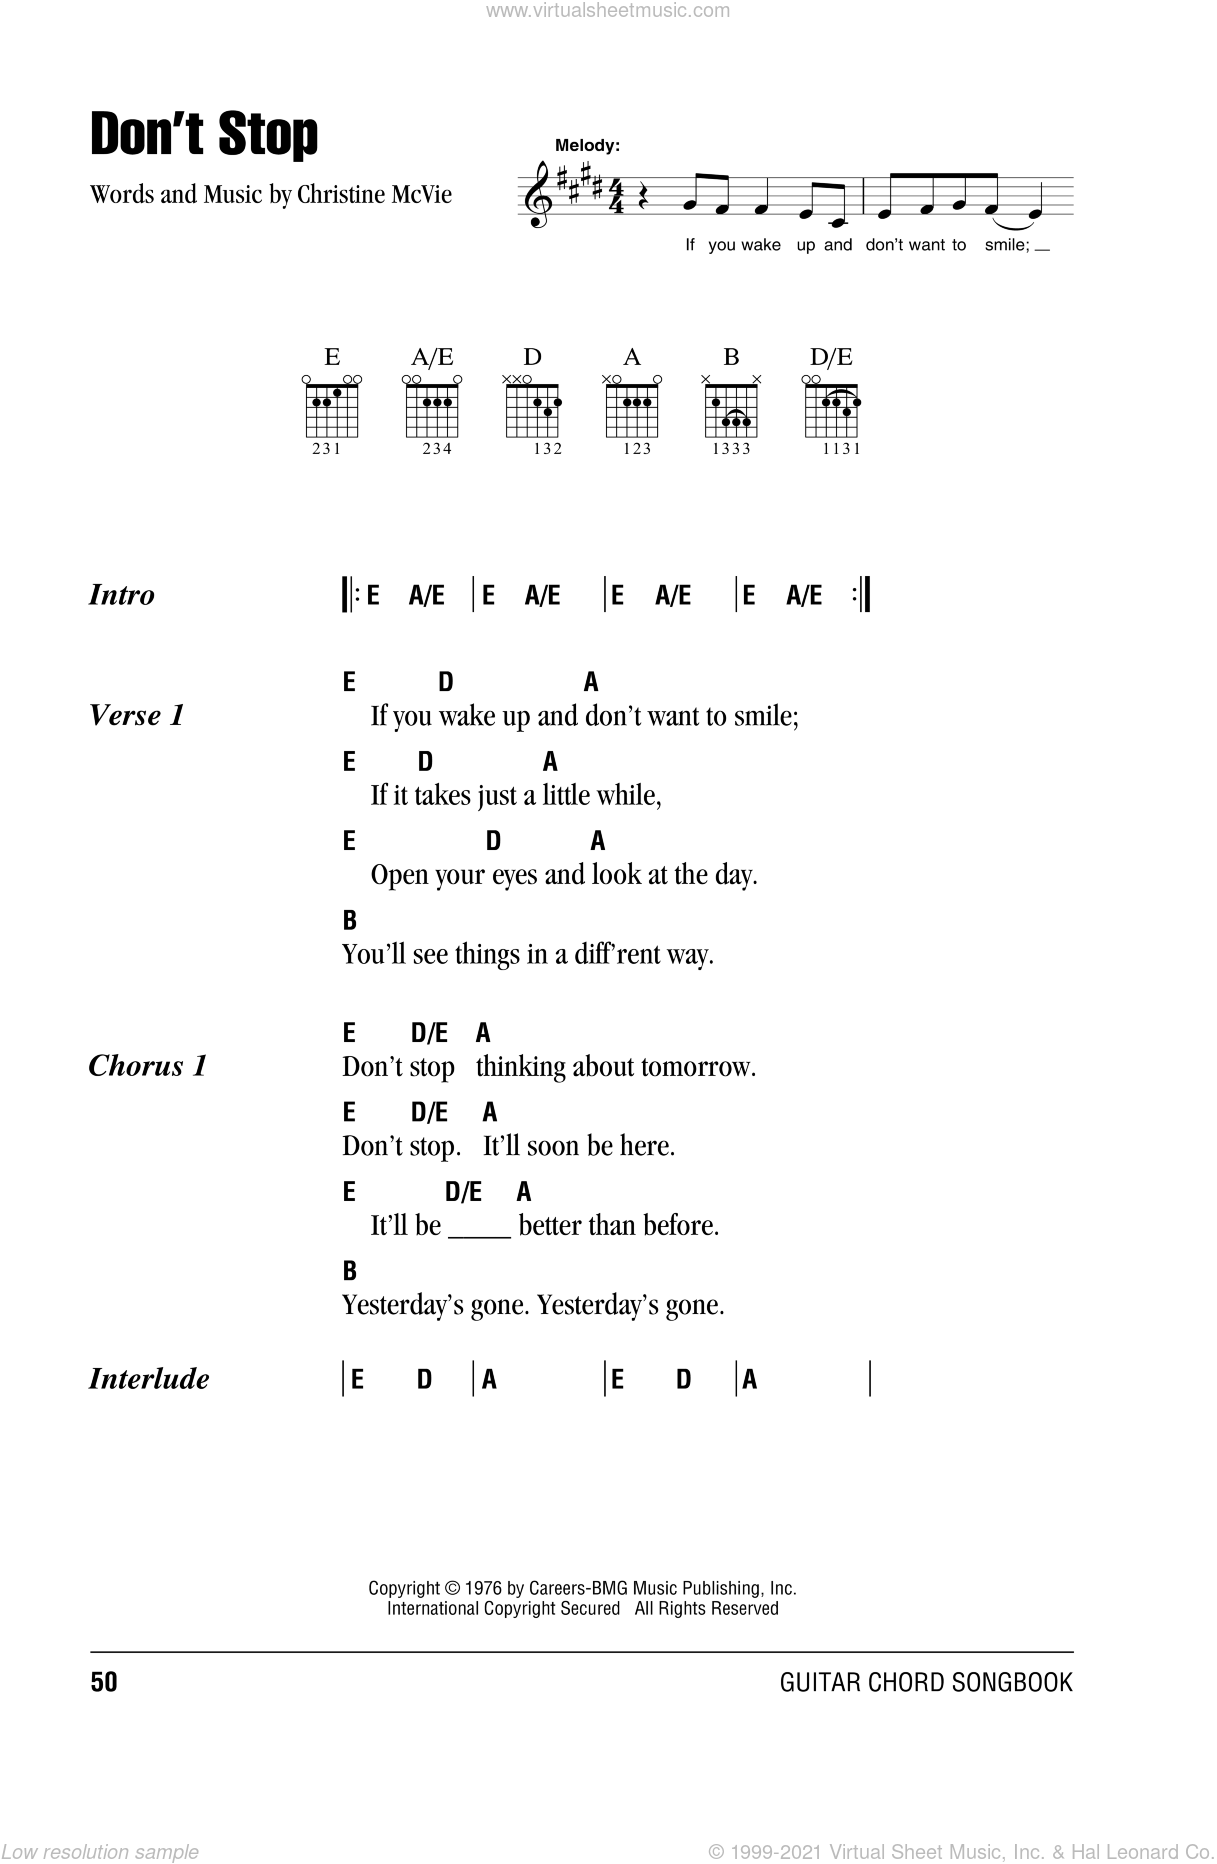 Don't Stop sheet music for guitar (chords) by Fleetwood Mac and Christine McVie, intermediate skill level